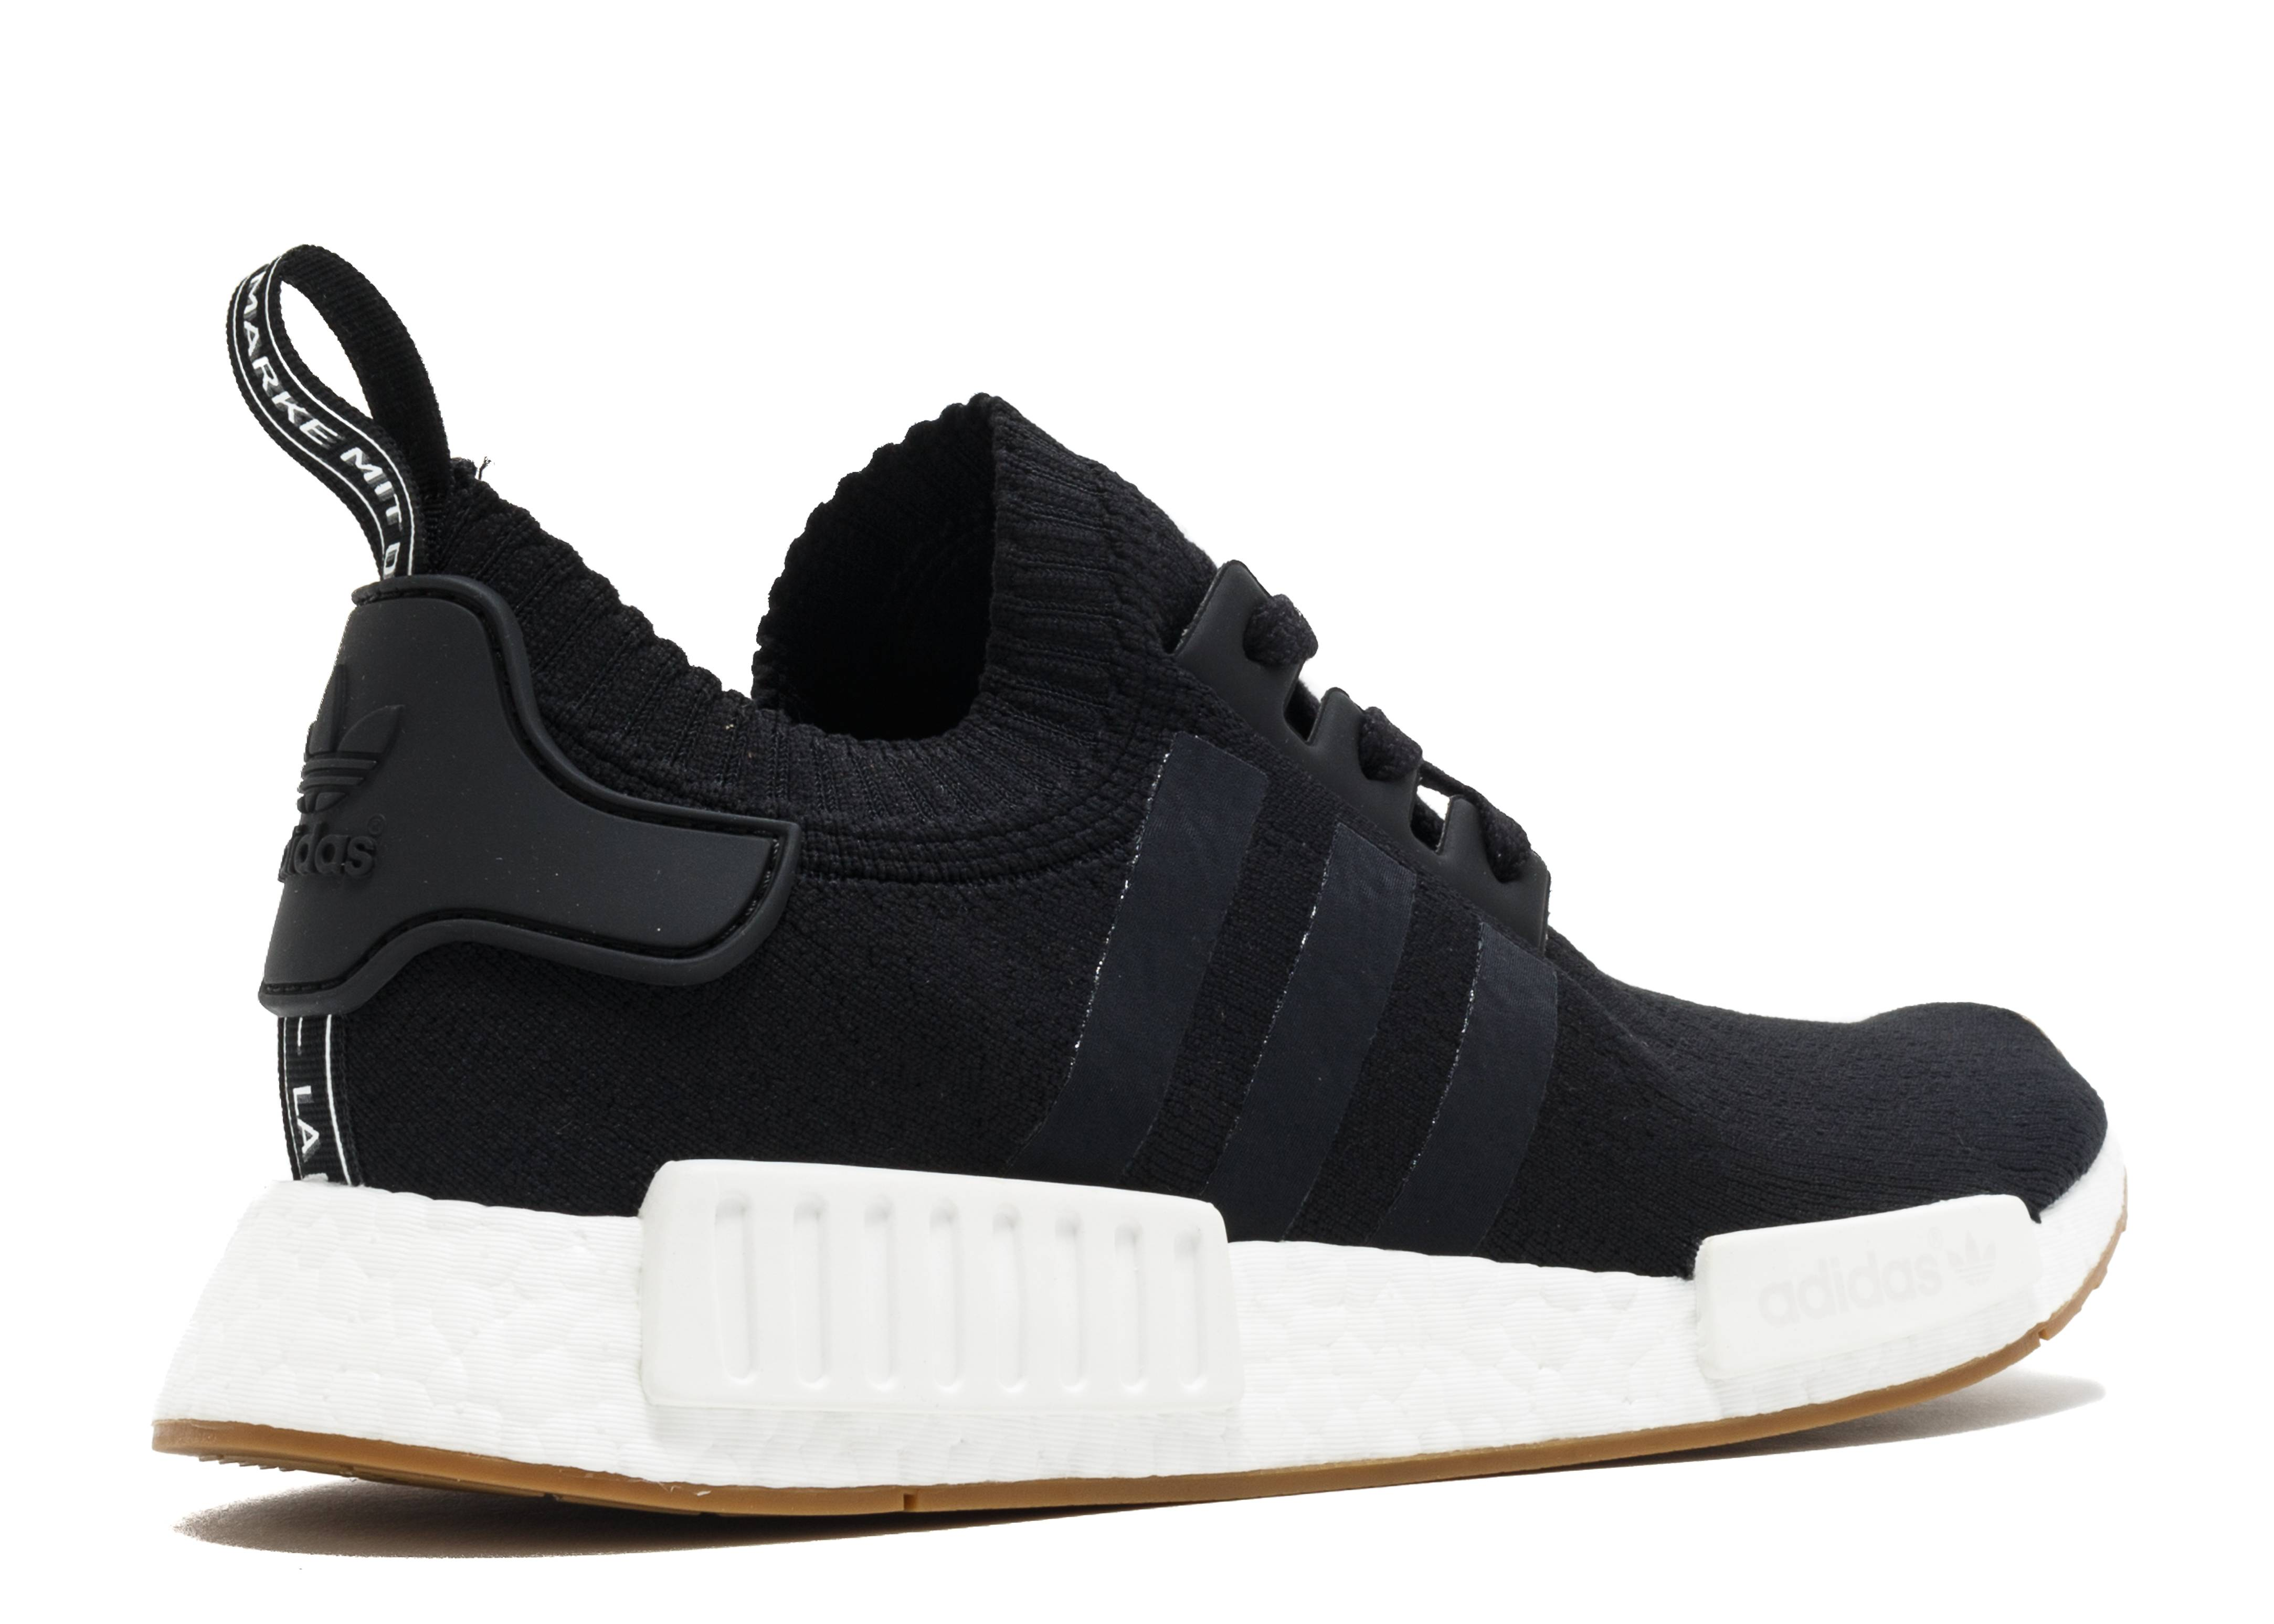 nmd r1 pk gum pack adidas by1887 black white gum. Black Bedroom Furniture Sets. Home Design Ideas